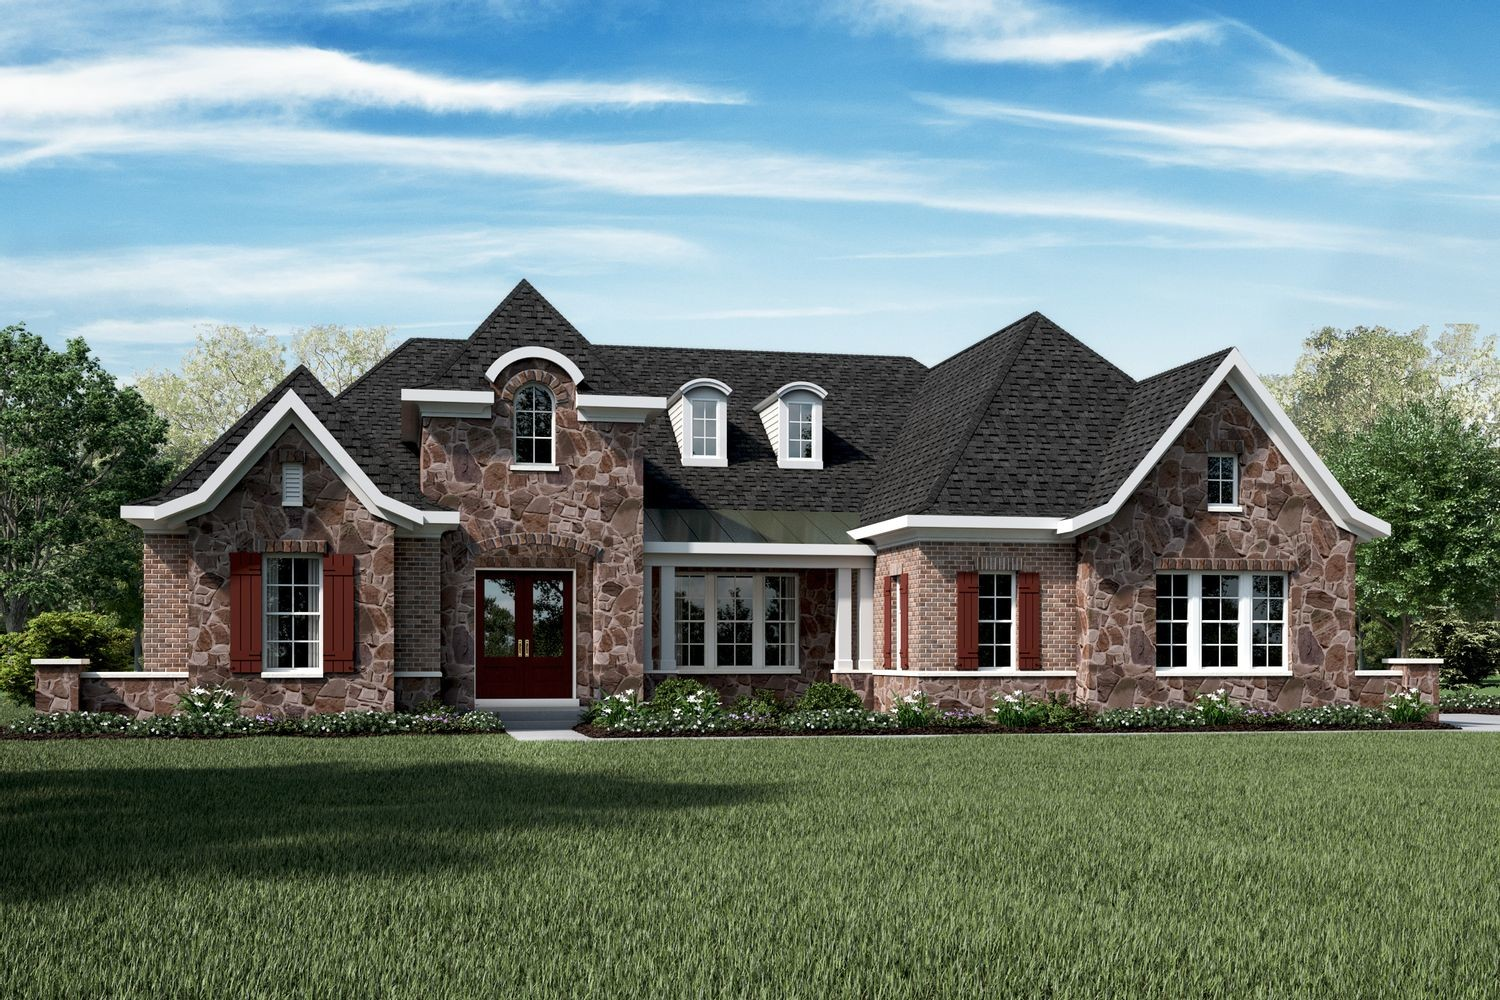 Ready To Build Home In Thorpe Creek - The Woods Community